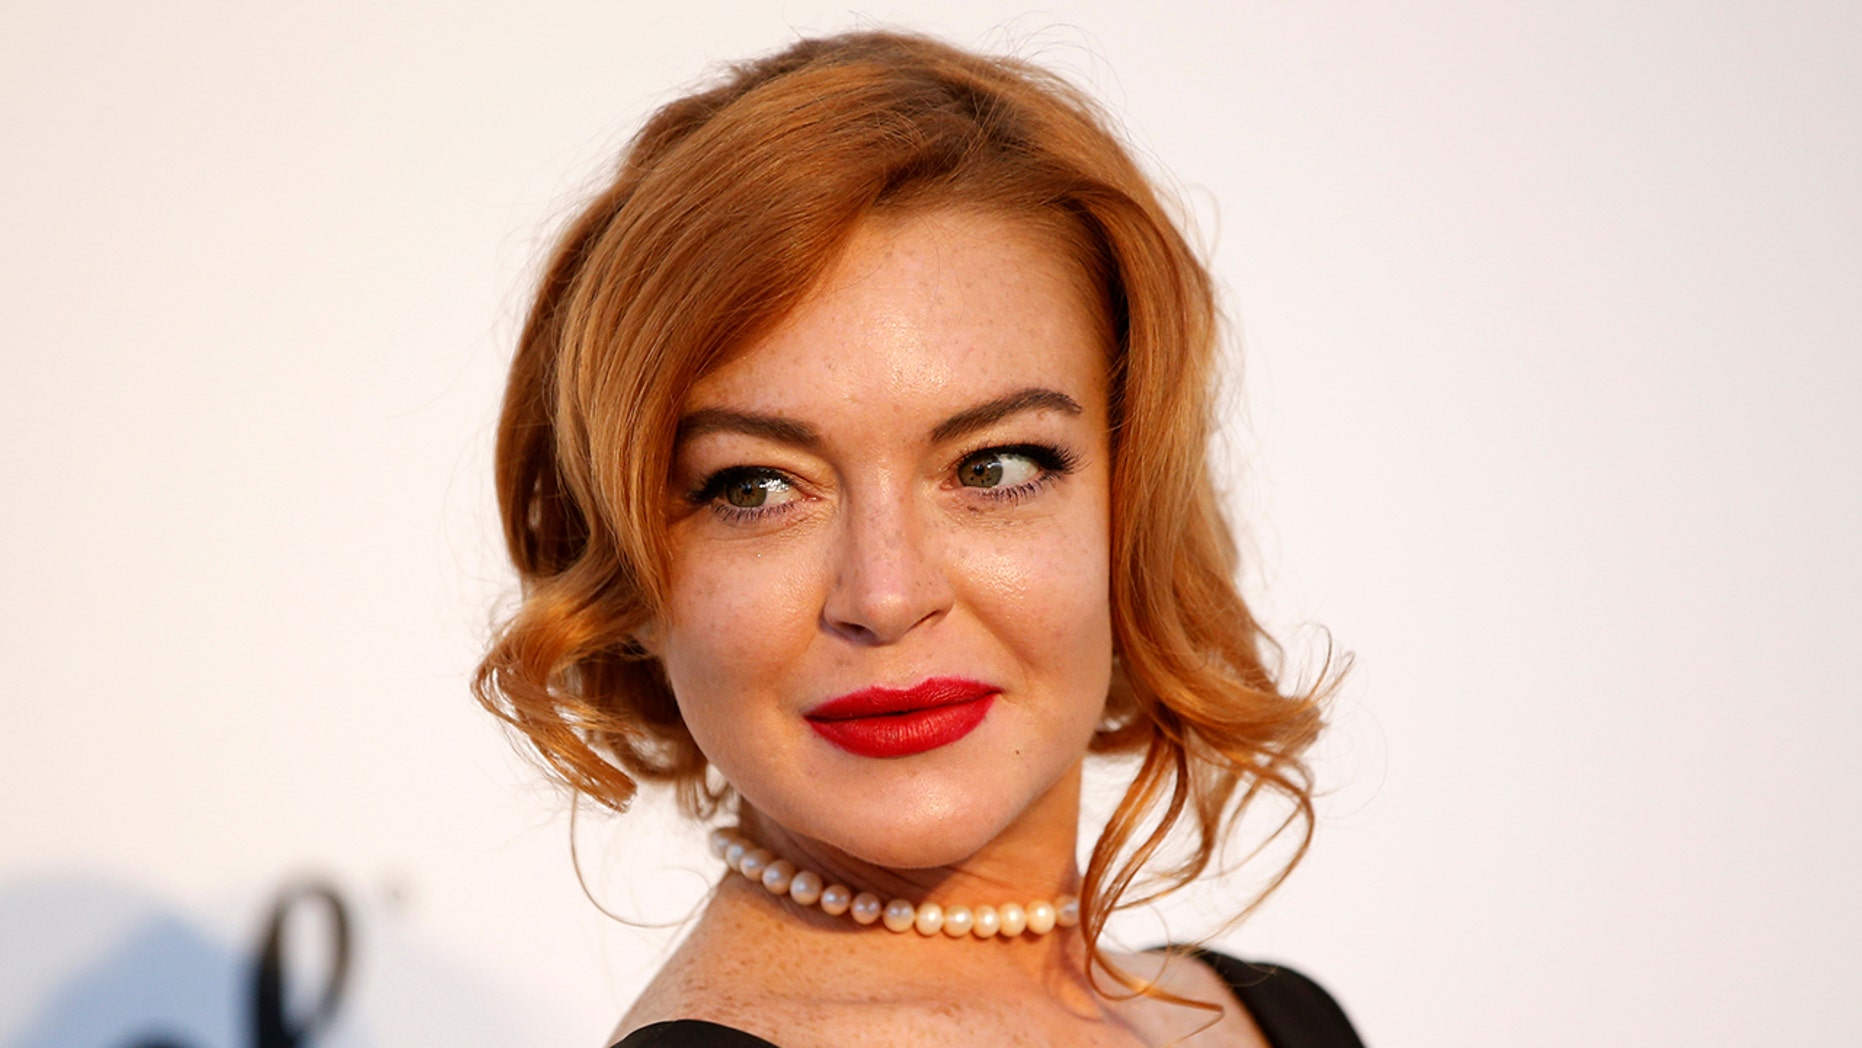 Lindsay Lohan is stamping her name on another nightclub in Greece.